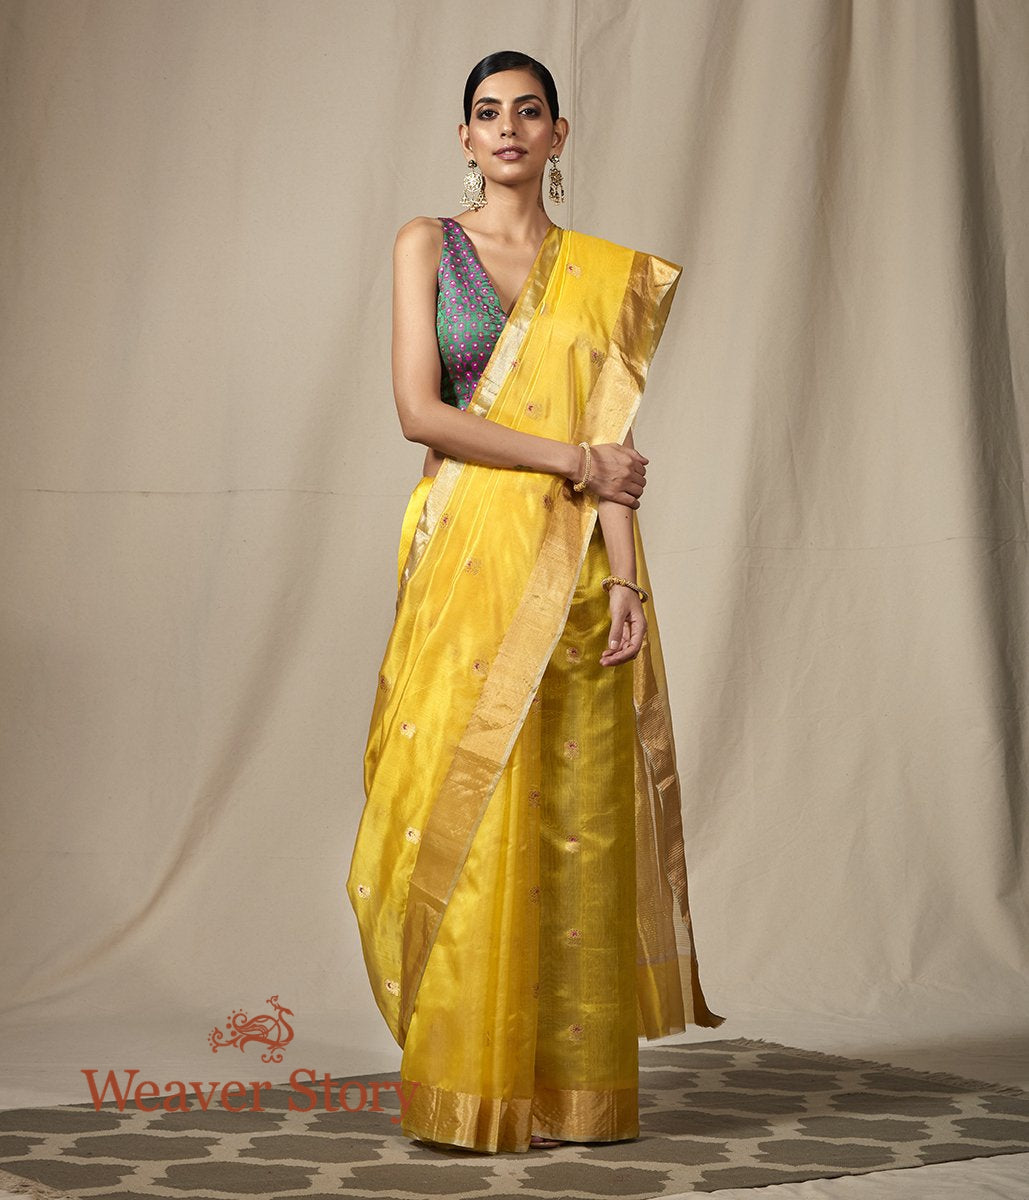 Handwoven Yellow Chanderi Silk Saree with Small Floral Motifs